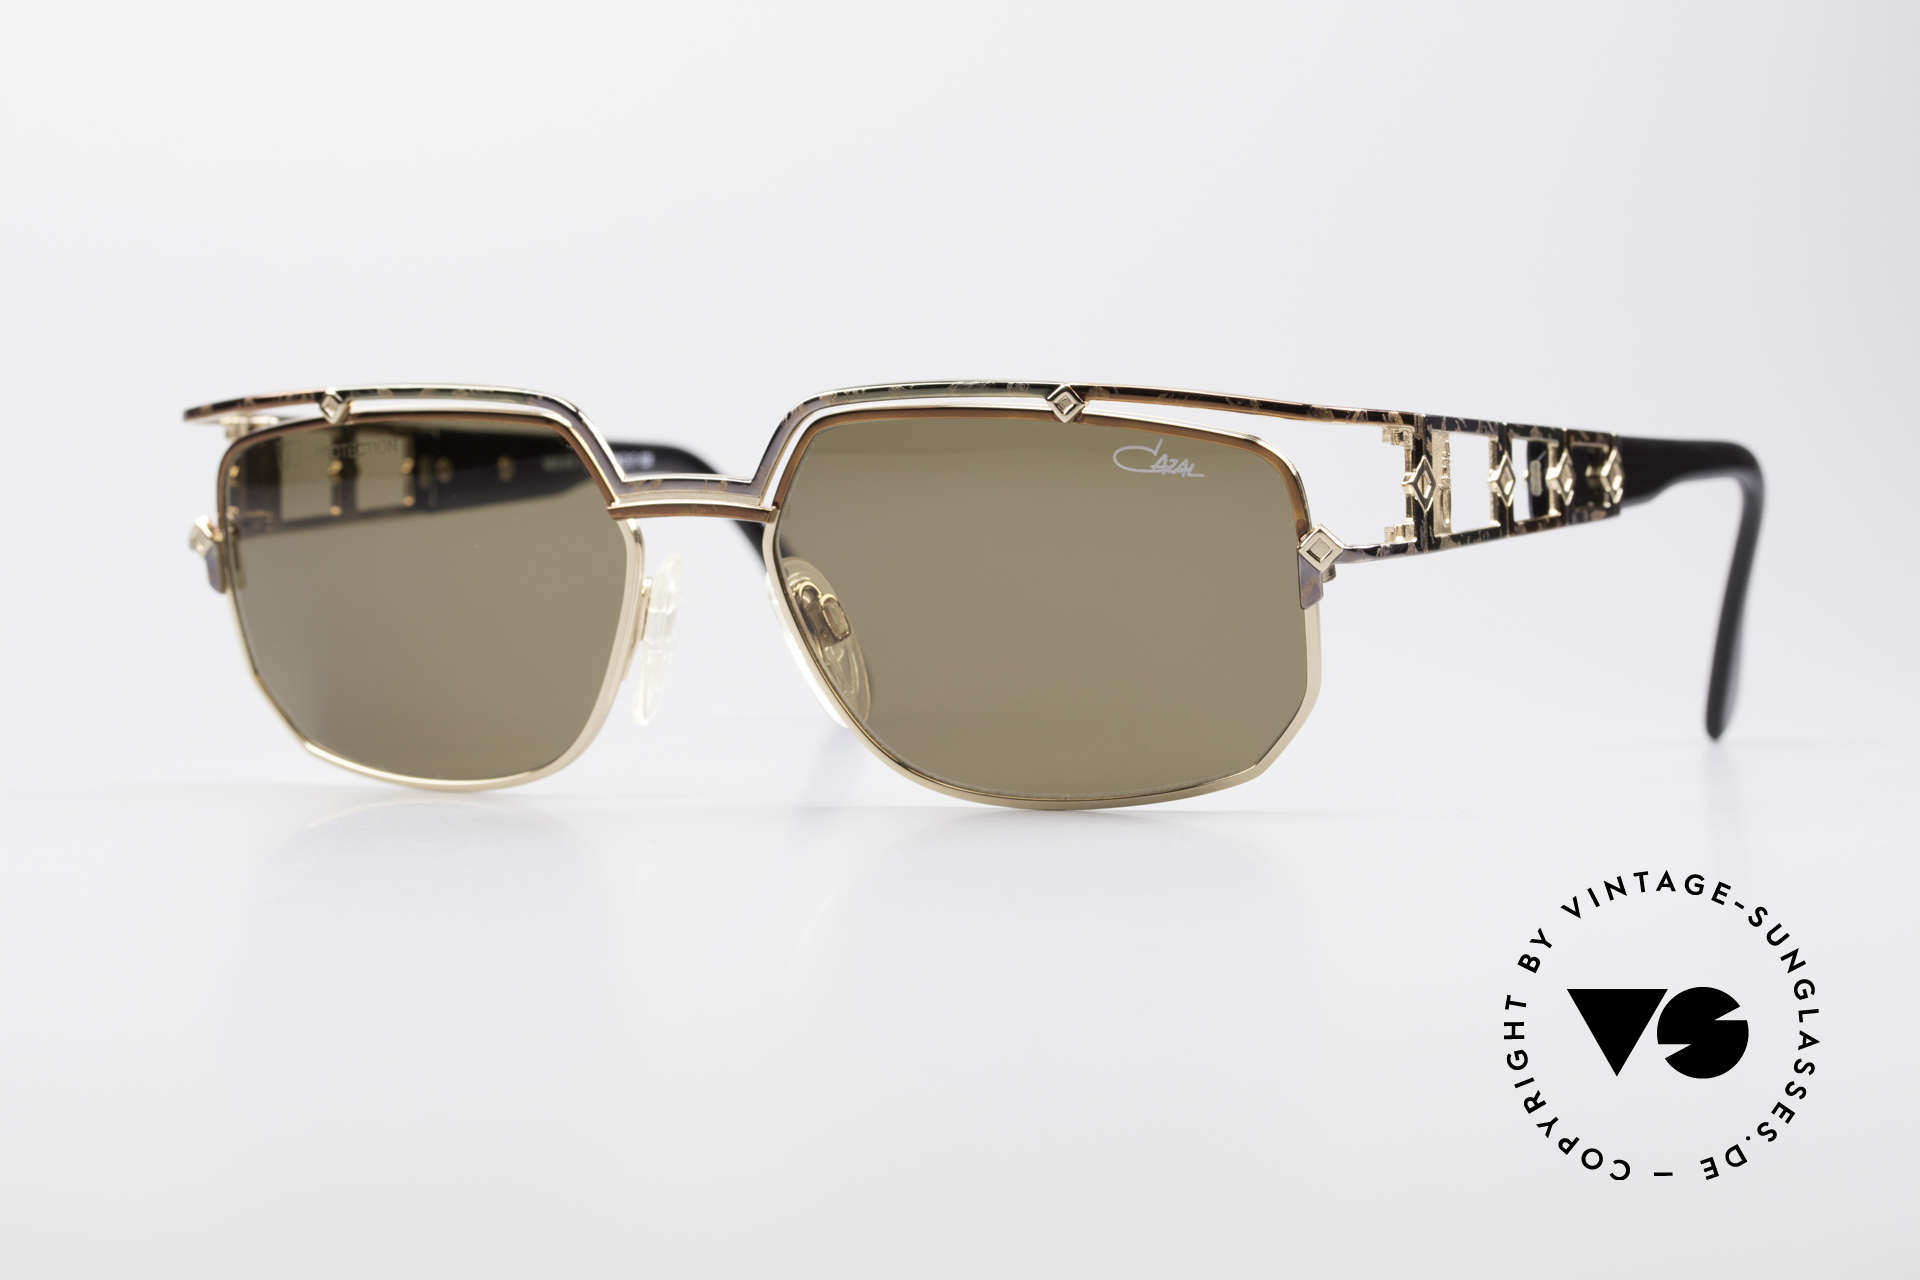 Cazal 979 Ladies Sunglasses Vintage, noble designer sunglasses by CAZAL from 1997, Made for Women